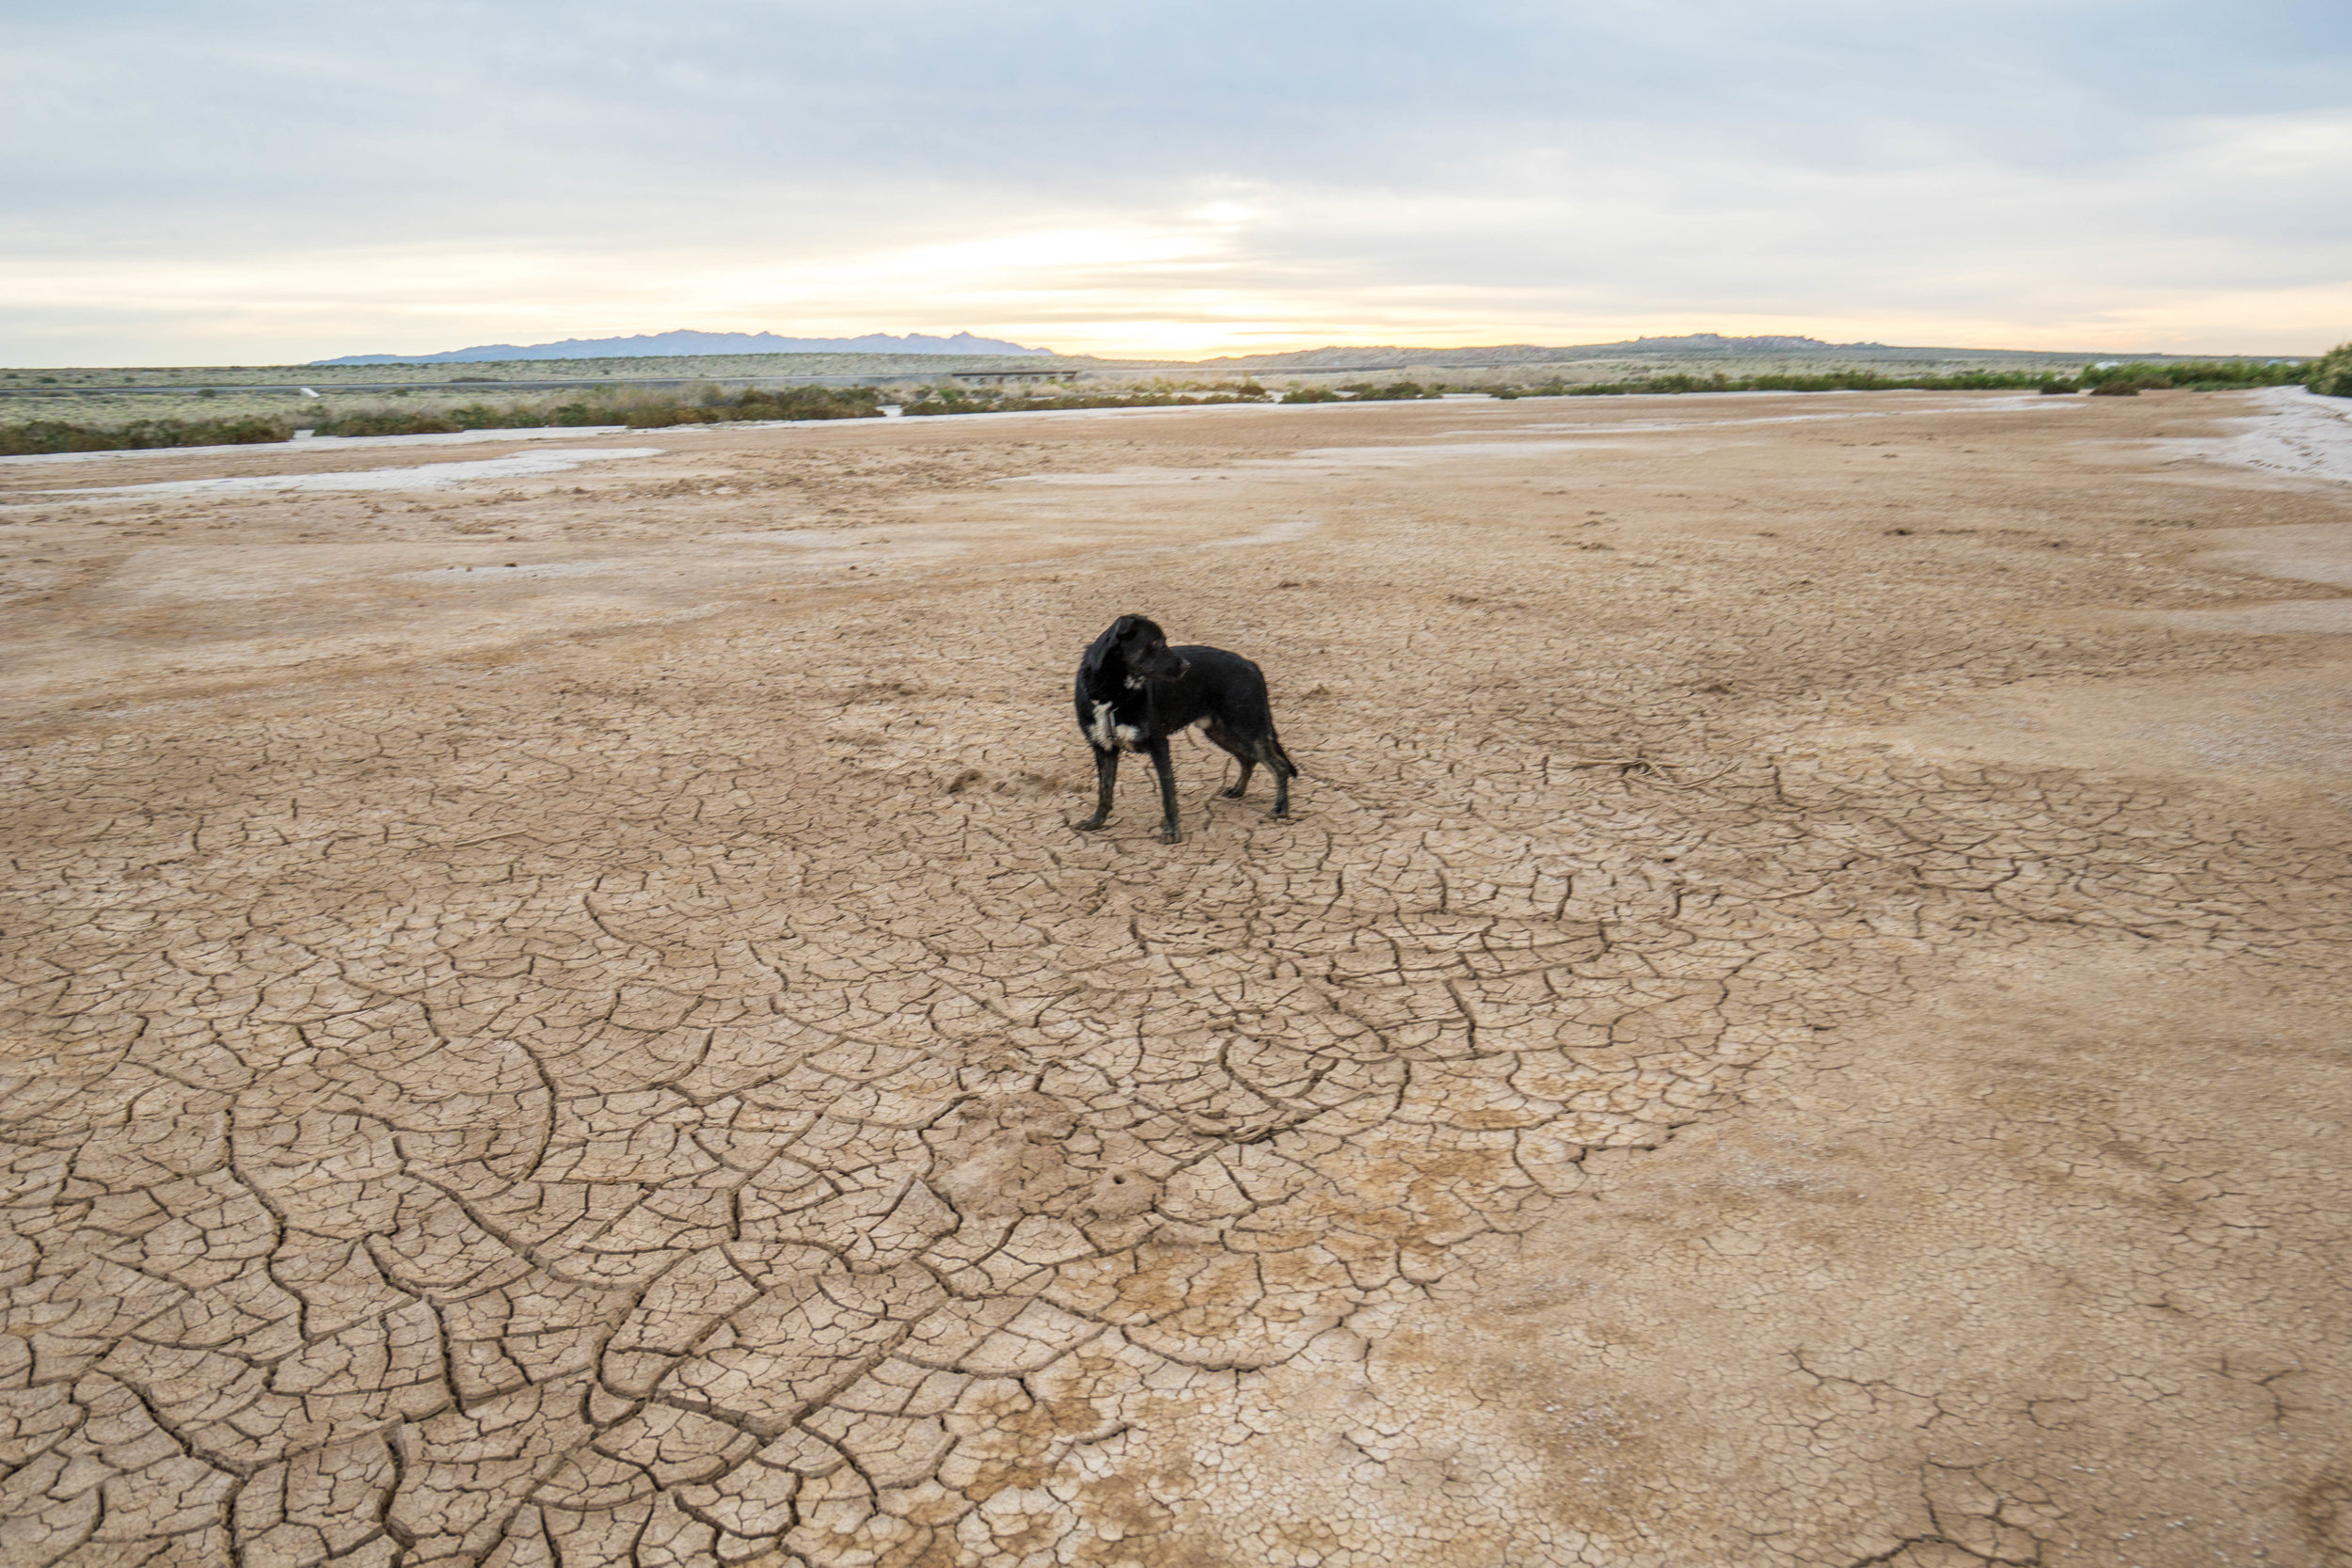 The desert's aridity is evident even next to California's largest lake. In fact, without a spill from a Colorado River water pipe & agricultural run-off, there wouldn't even be a lake here.